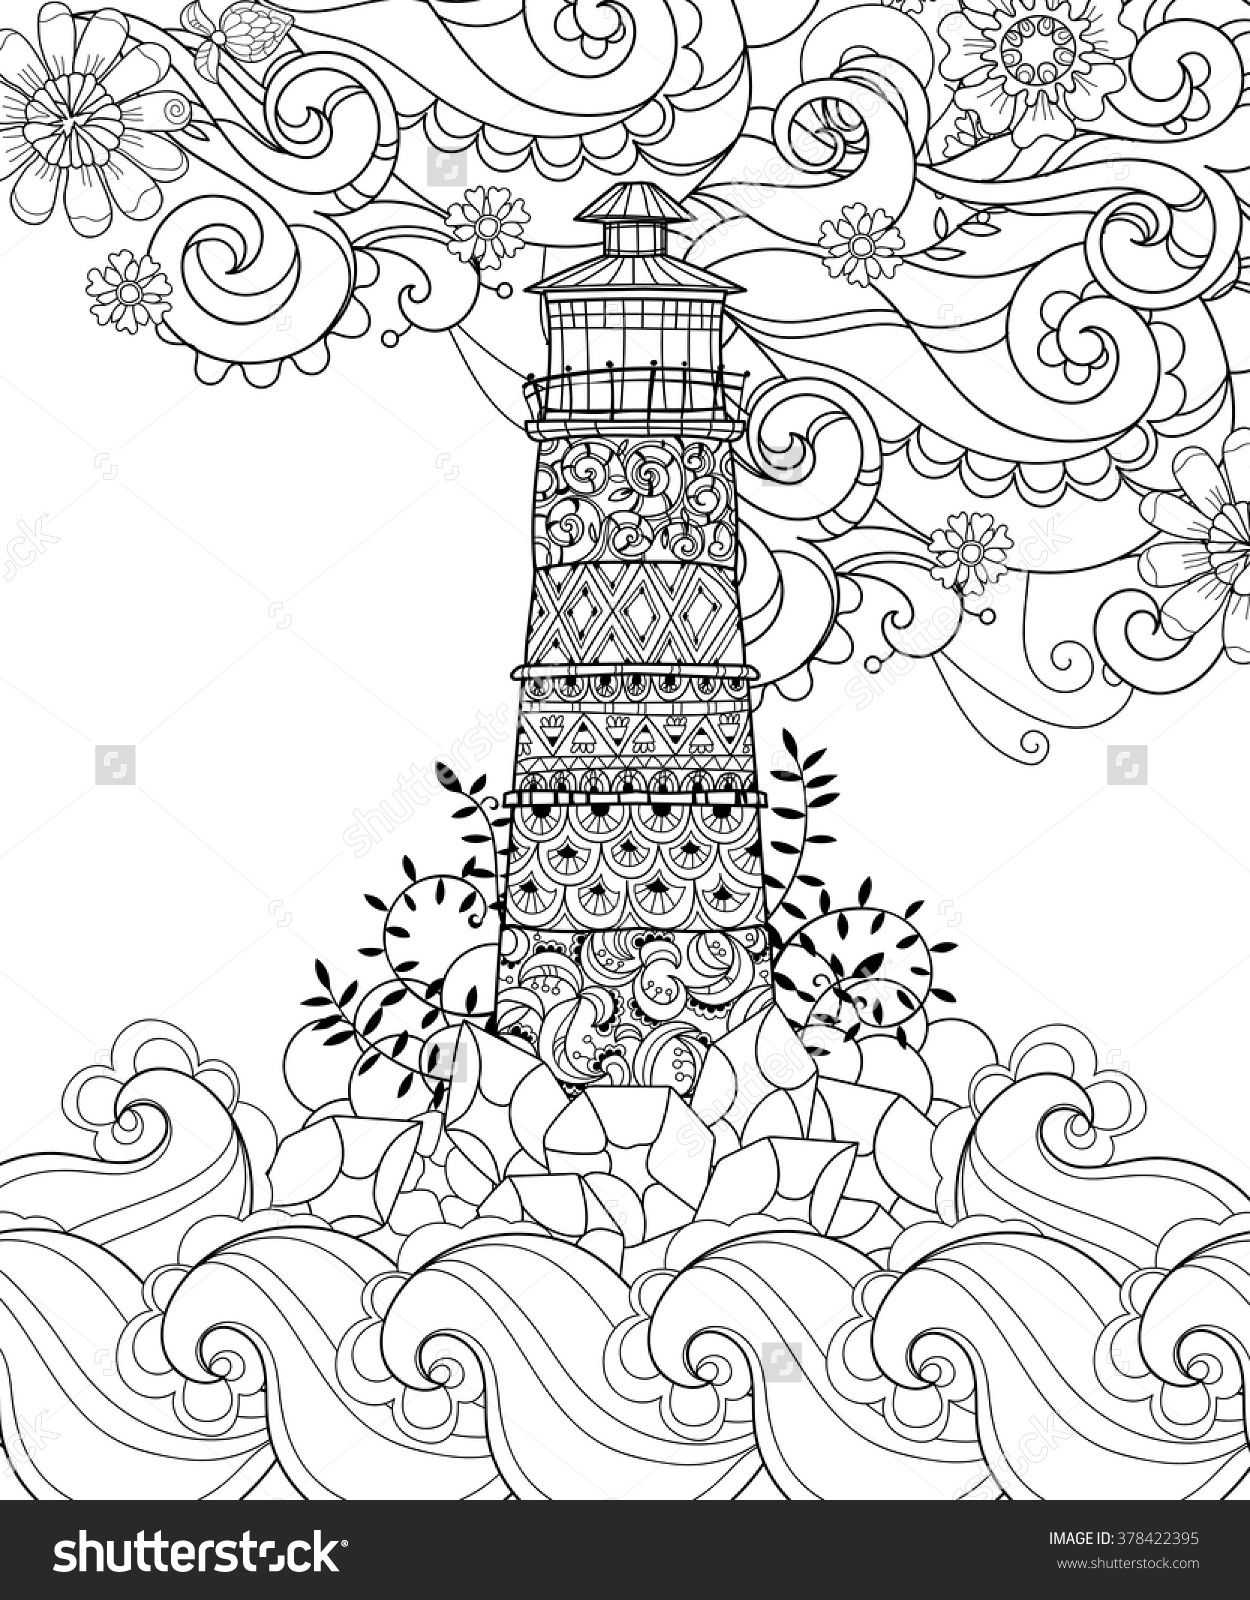 1250x1600 Awesome Hand Drawn Doodle Outline Lighthouse Decorated With Floral